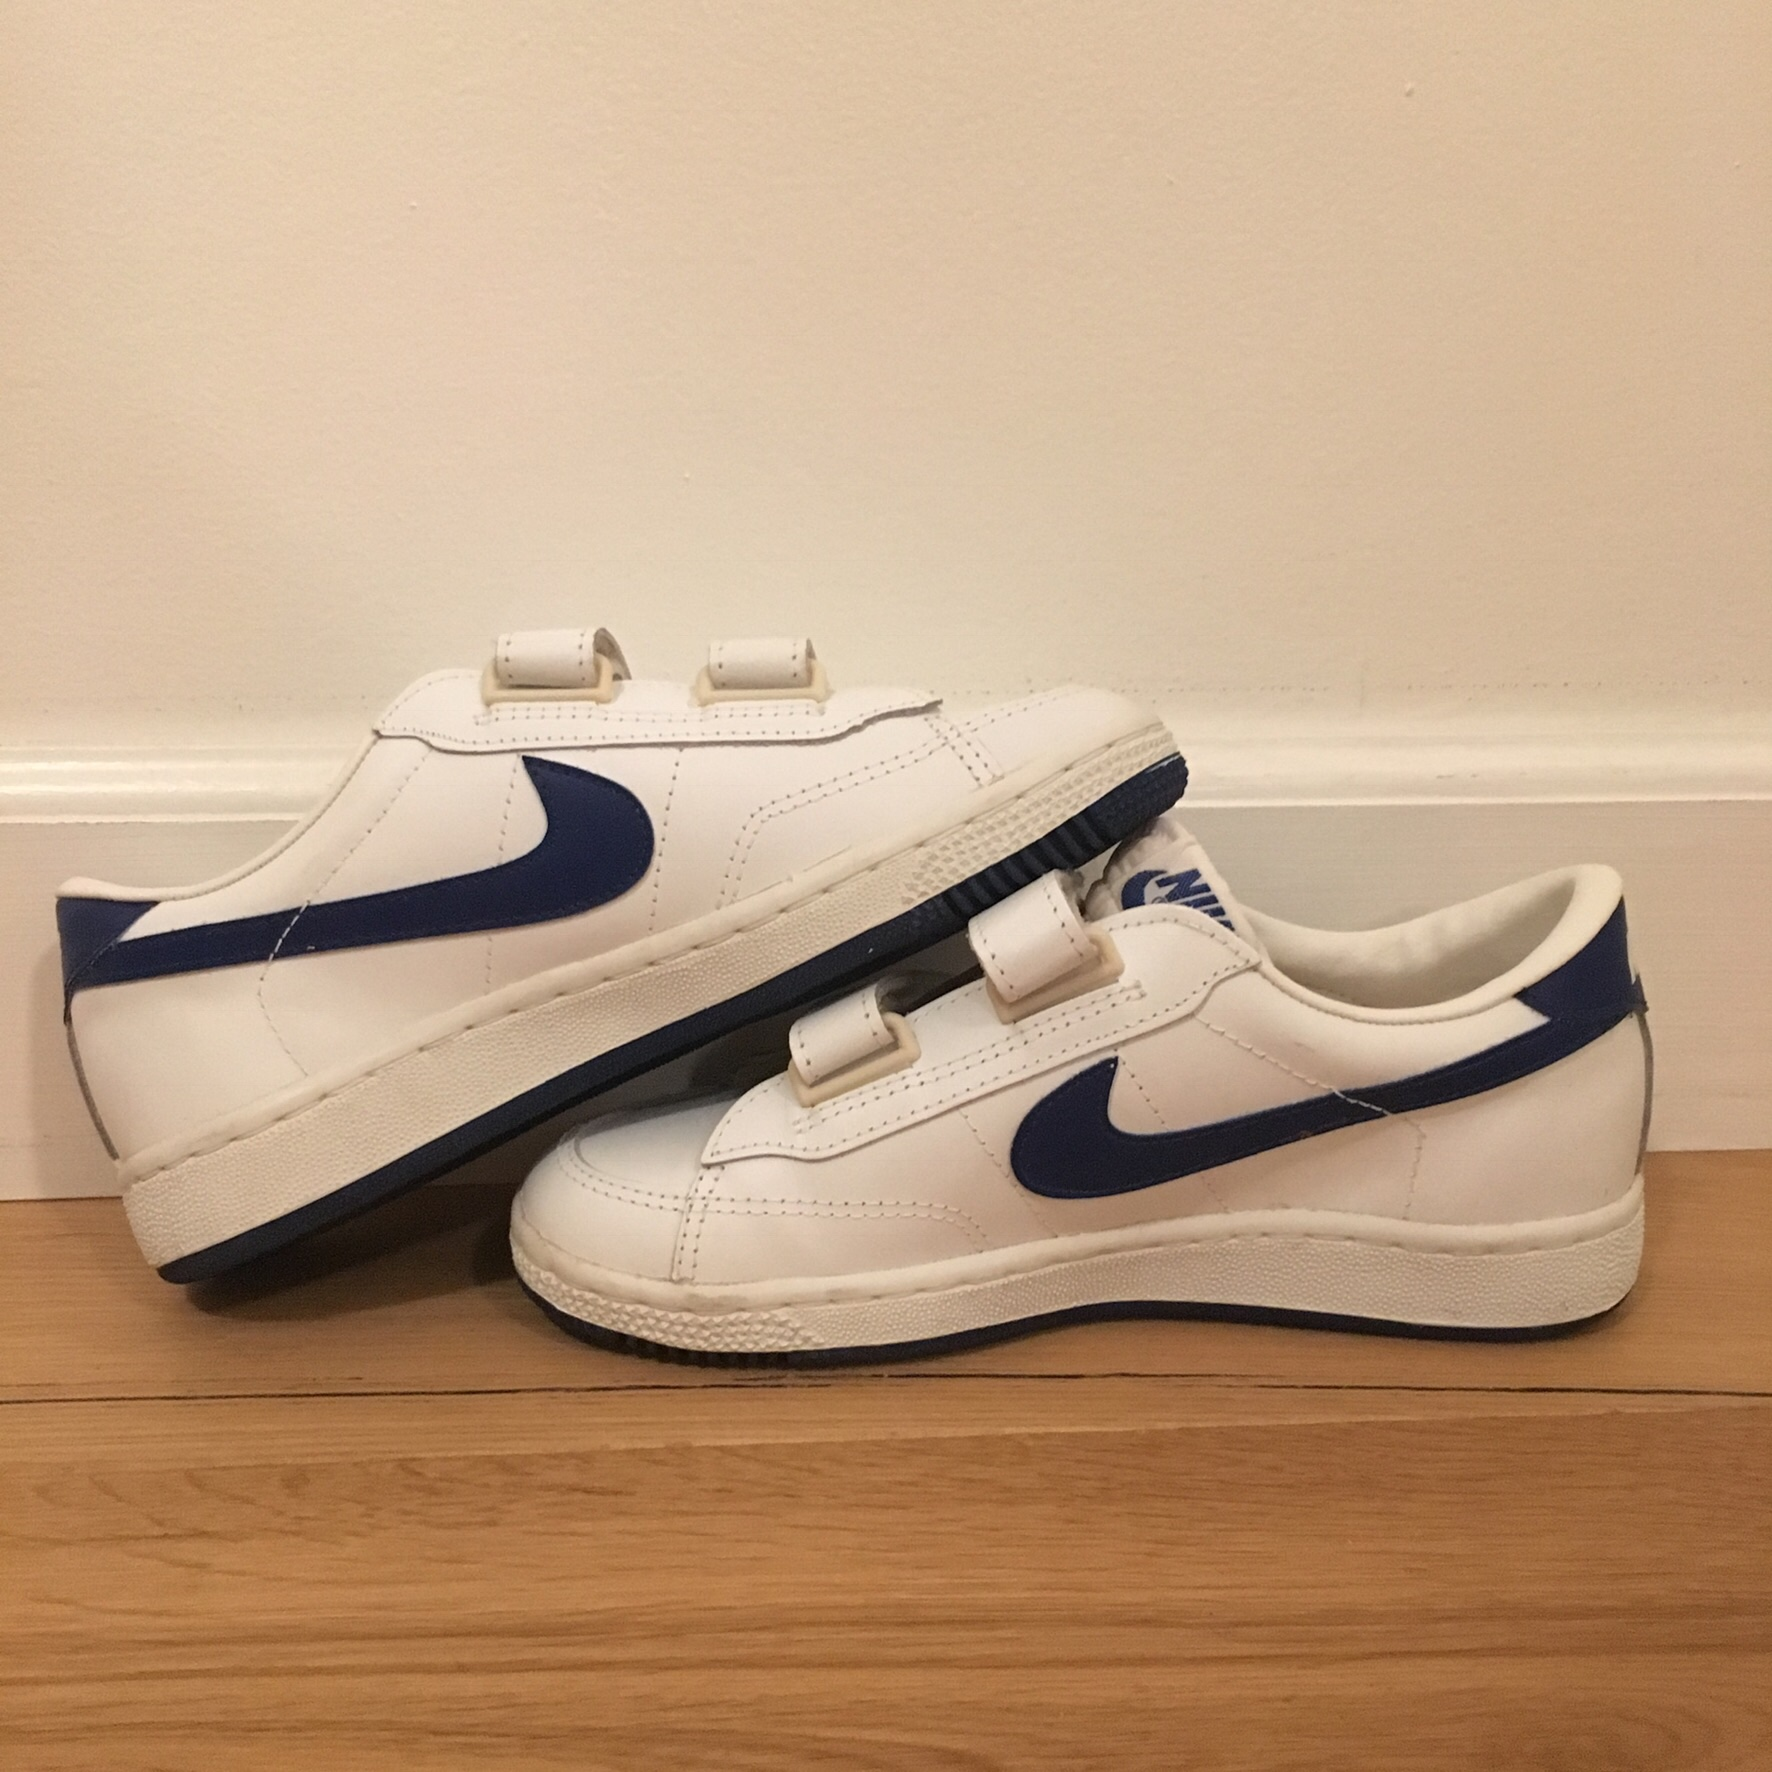 VINTAGE VELCRO NIKE! Great condition